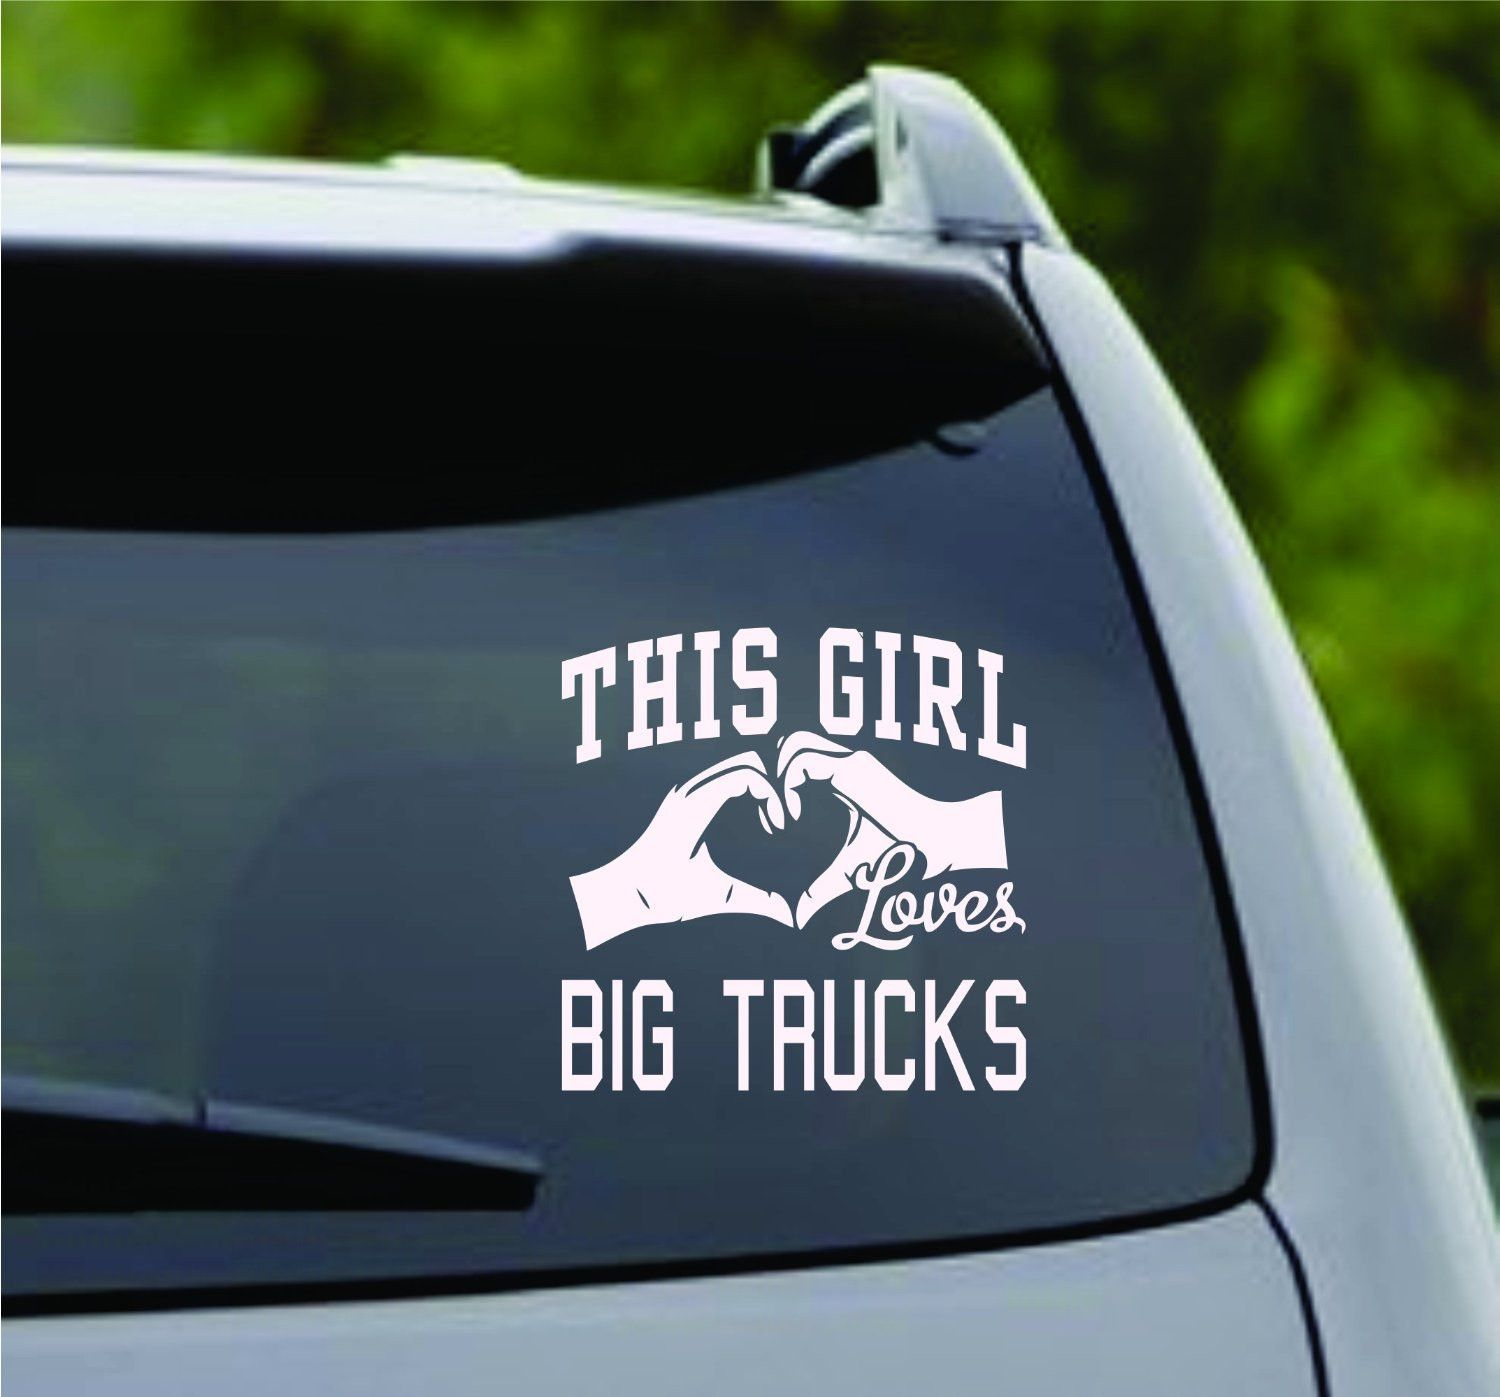 Superior Quality In Design Material And Production Easy - Redneck window decals for trucks